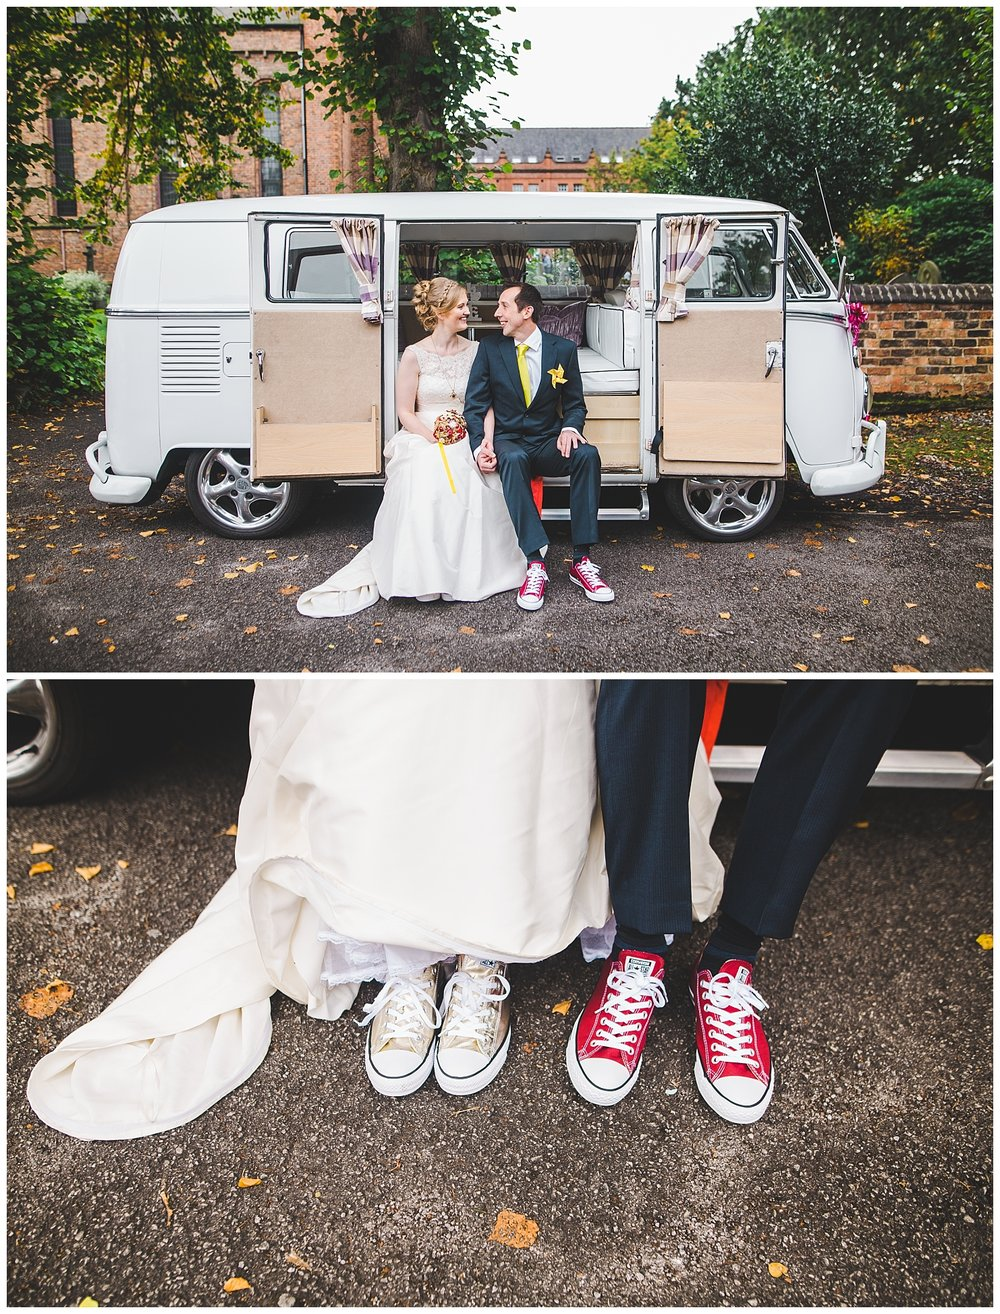 artistic shot of bride and groom with the camper van